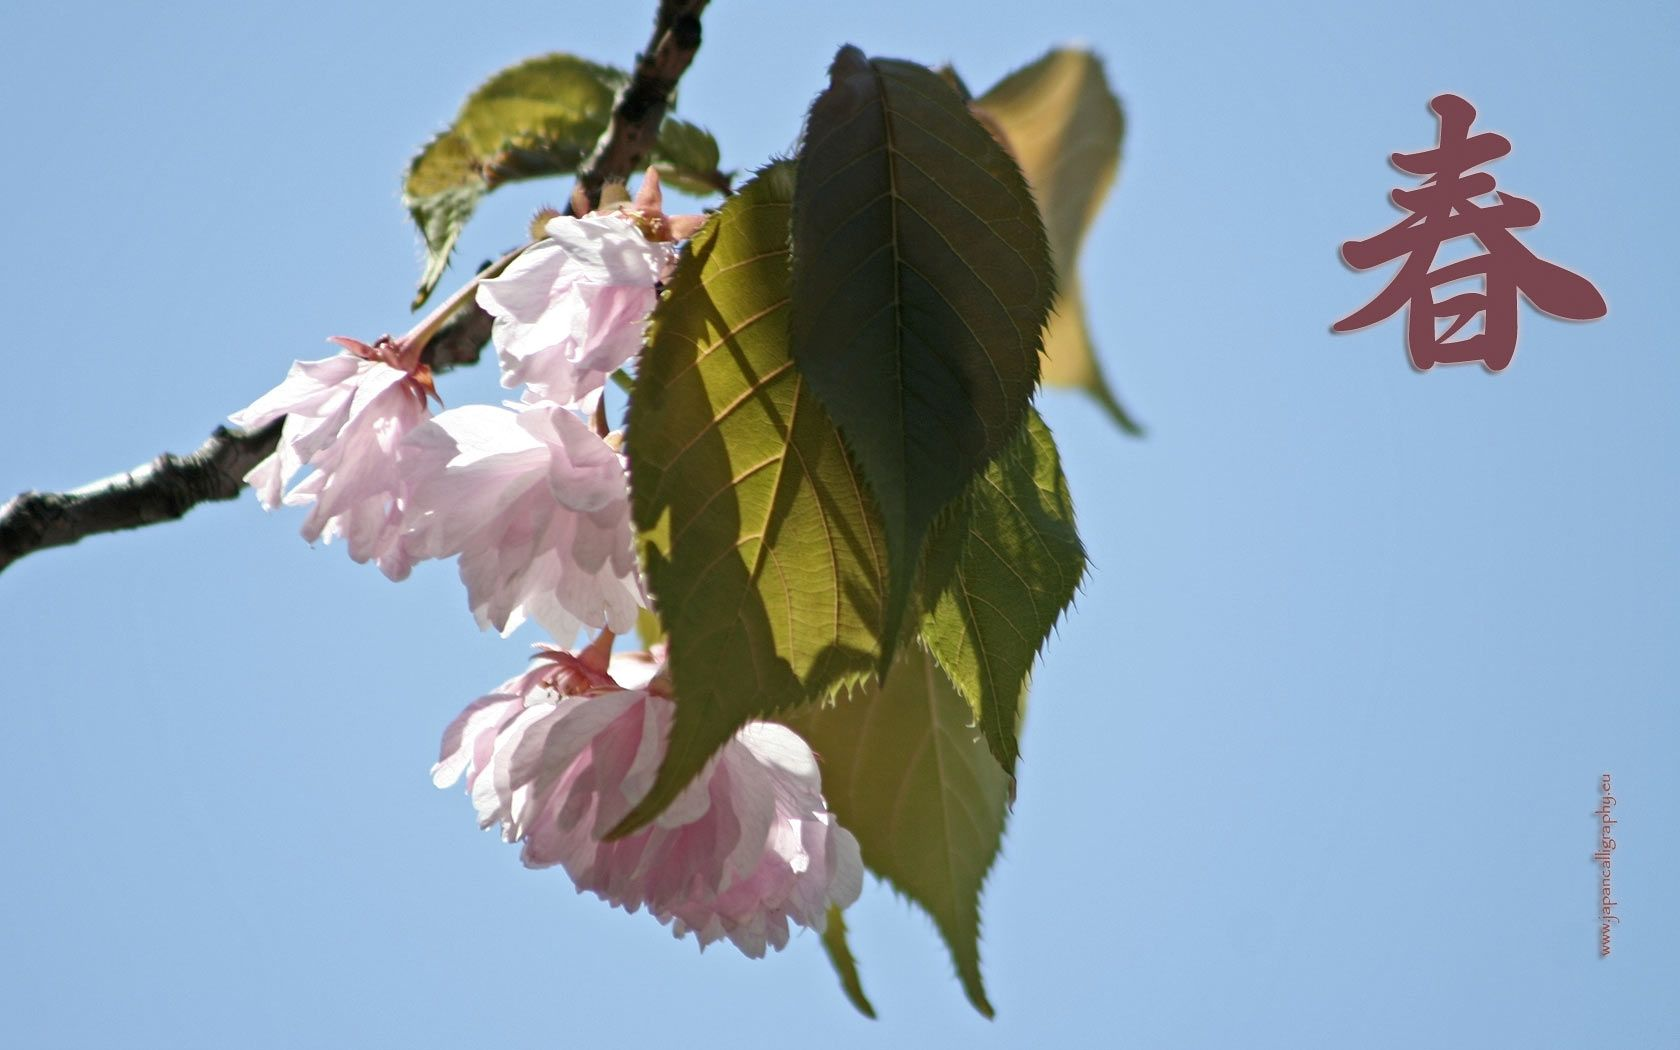 The cherry blossom (sakura) is Japan's unofficial national